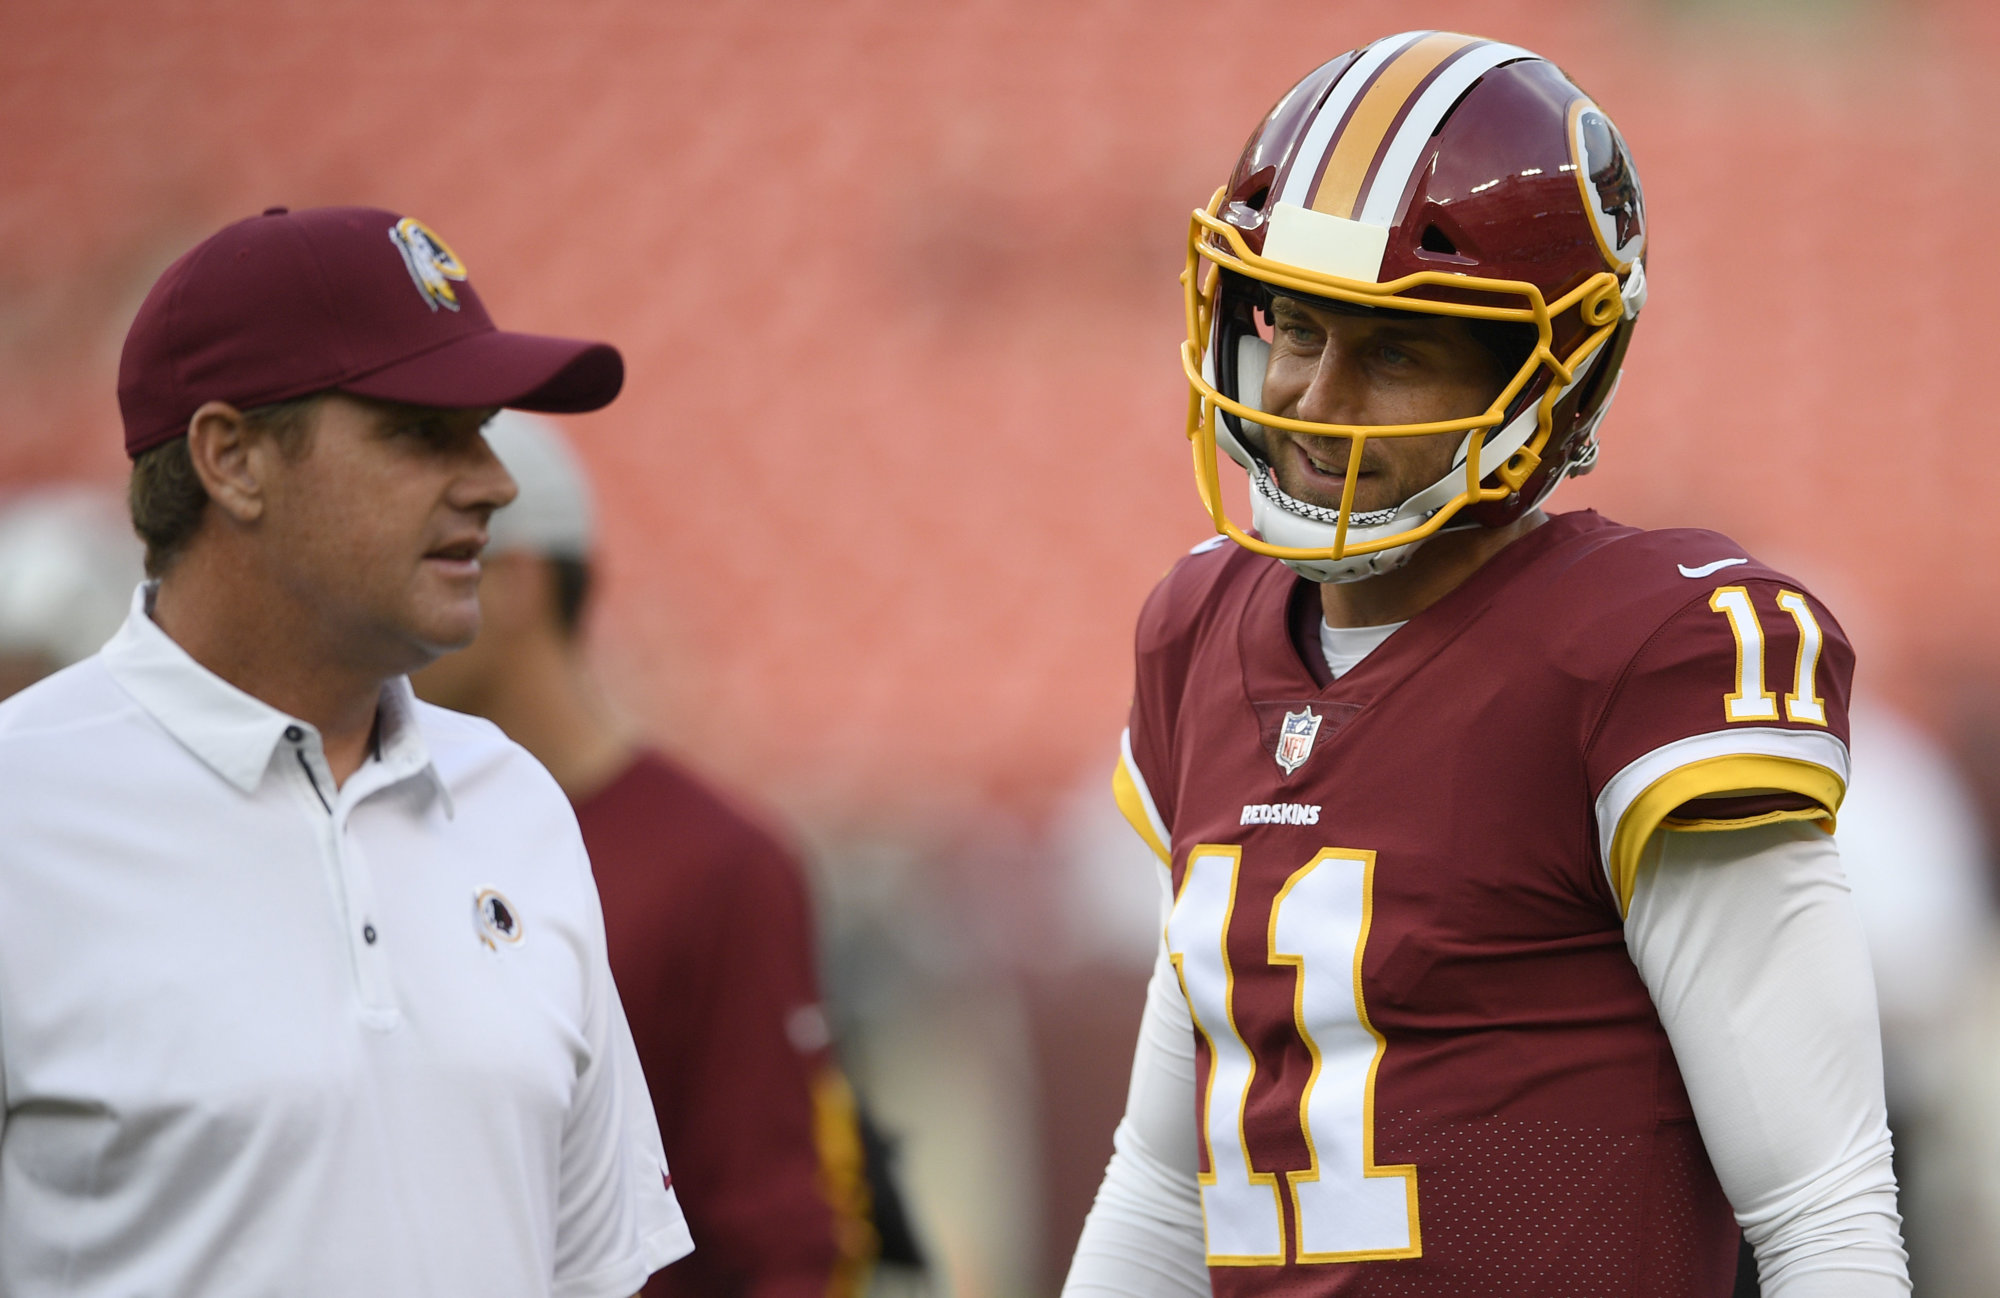 Washington Redskins quarterback Alex Smith (11) stands next to Washington Redskins head coach Jay Gruden, left, before a preseason NFL football game against the New York Jets, Thursday, Aug. 16, 2018, in Landover, Md. (AP Photo/Nick Wass)